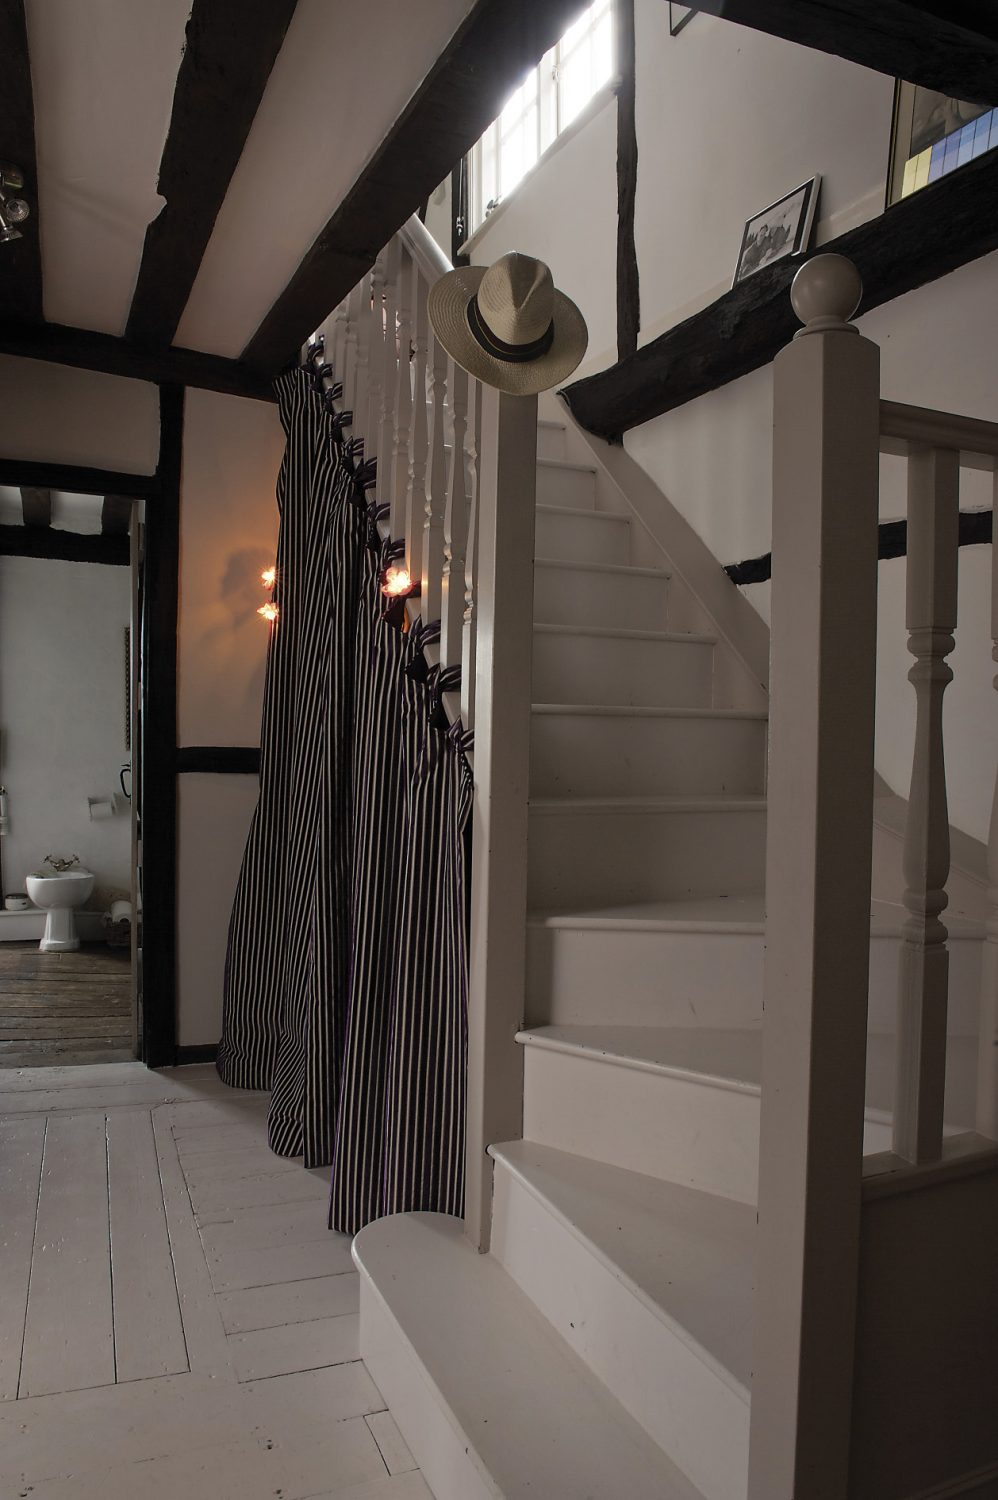 Stairs lead off from the landing up to the second floor. Emma has cleverly screened off the space beneath the stairs to house shoes and clothes, illuminated by fairy lights